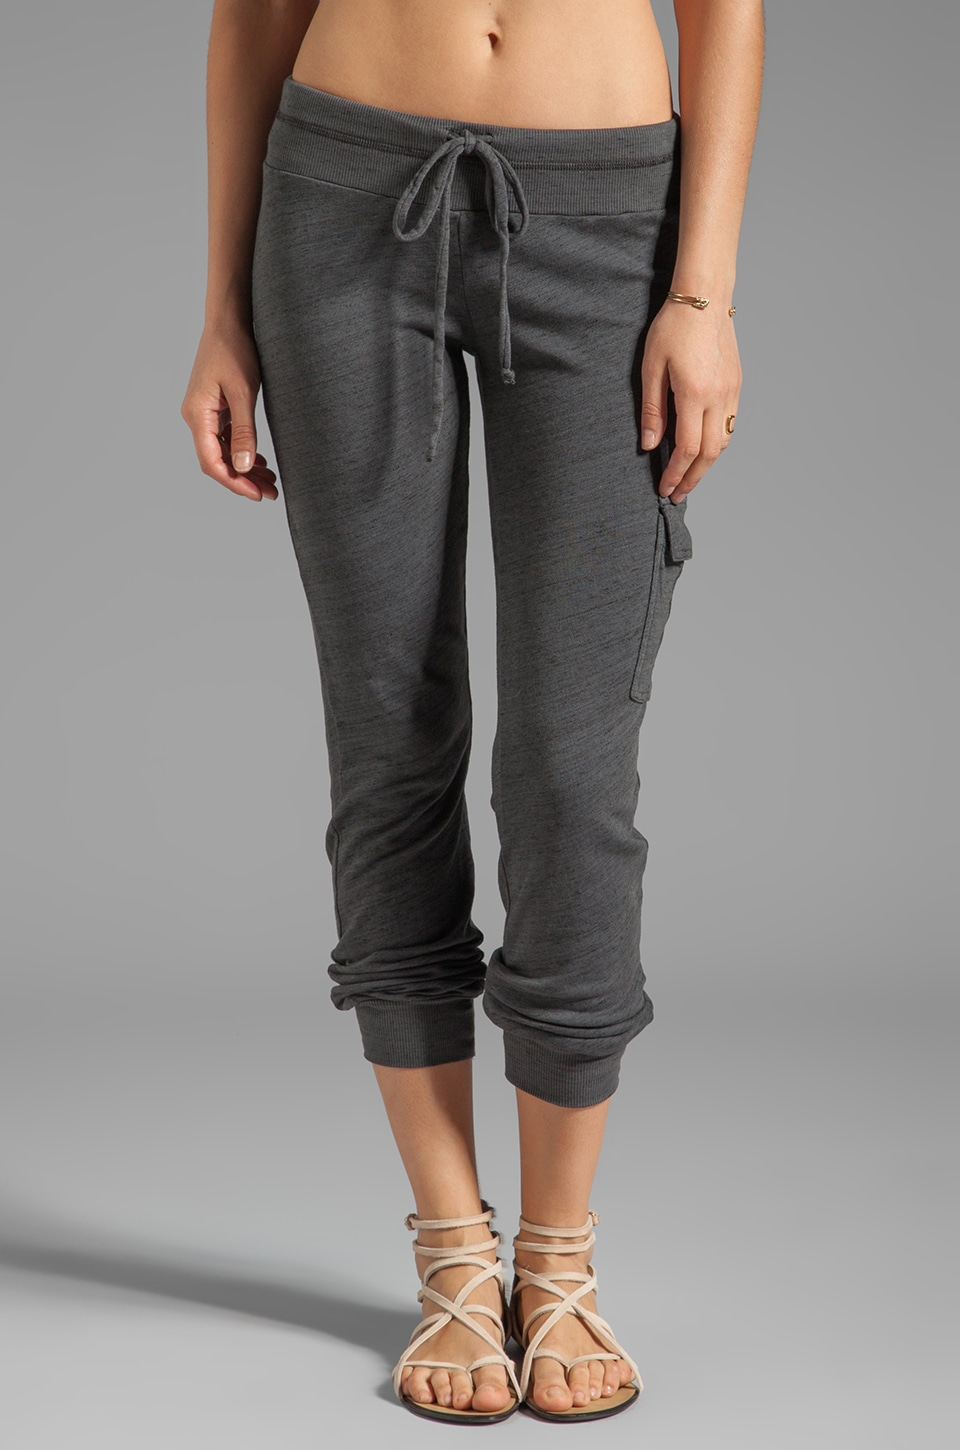 Splendid Space-Dyed Heather Active Sweat Pant in Coal